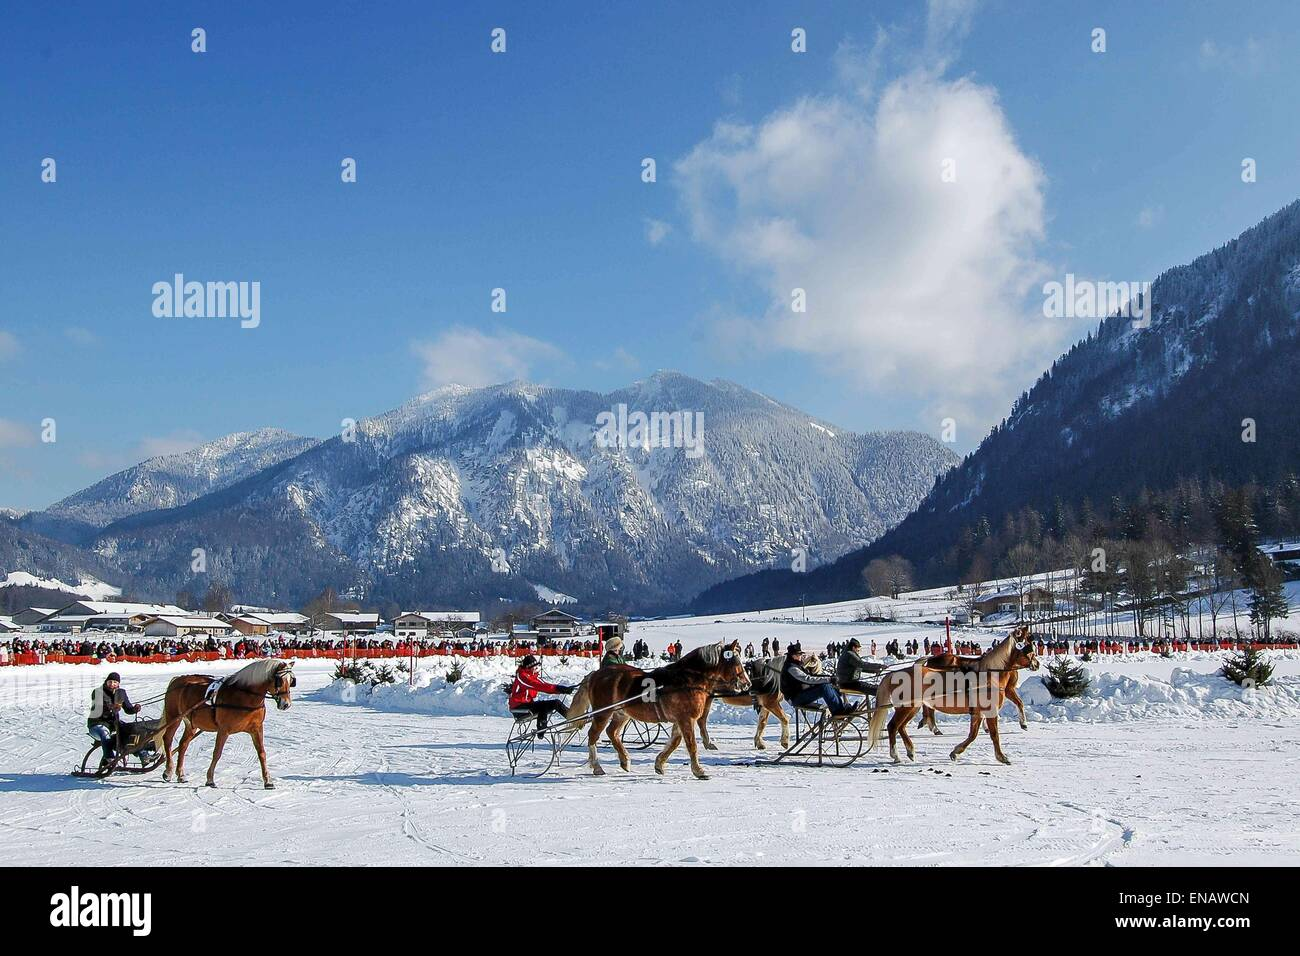 Rottach-Egern  horse-drawn sleigh race at the foot of Wallberg Stock Photo